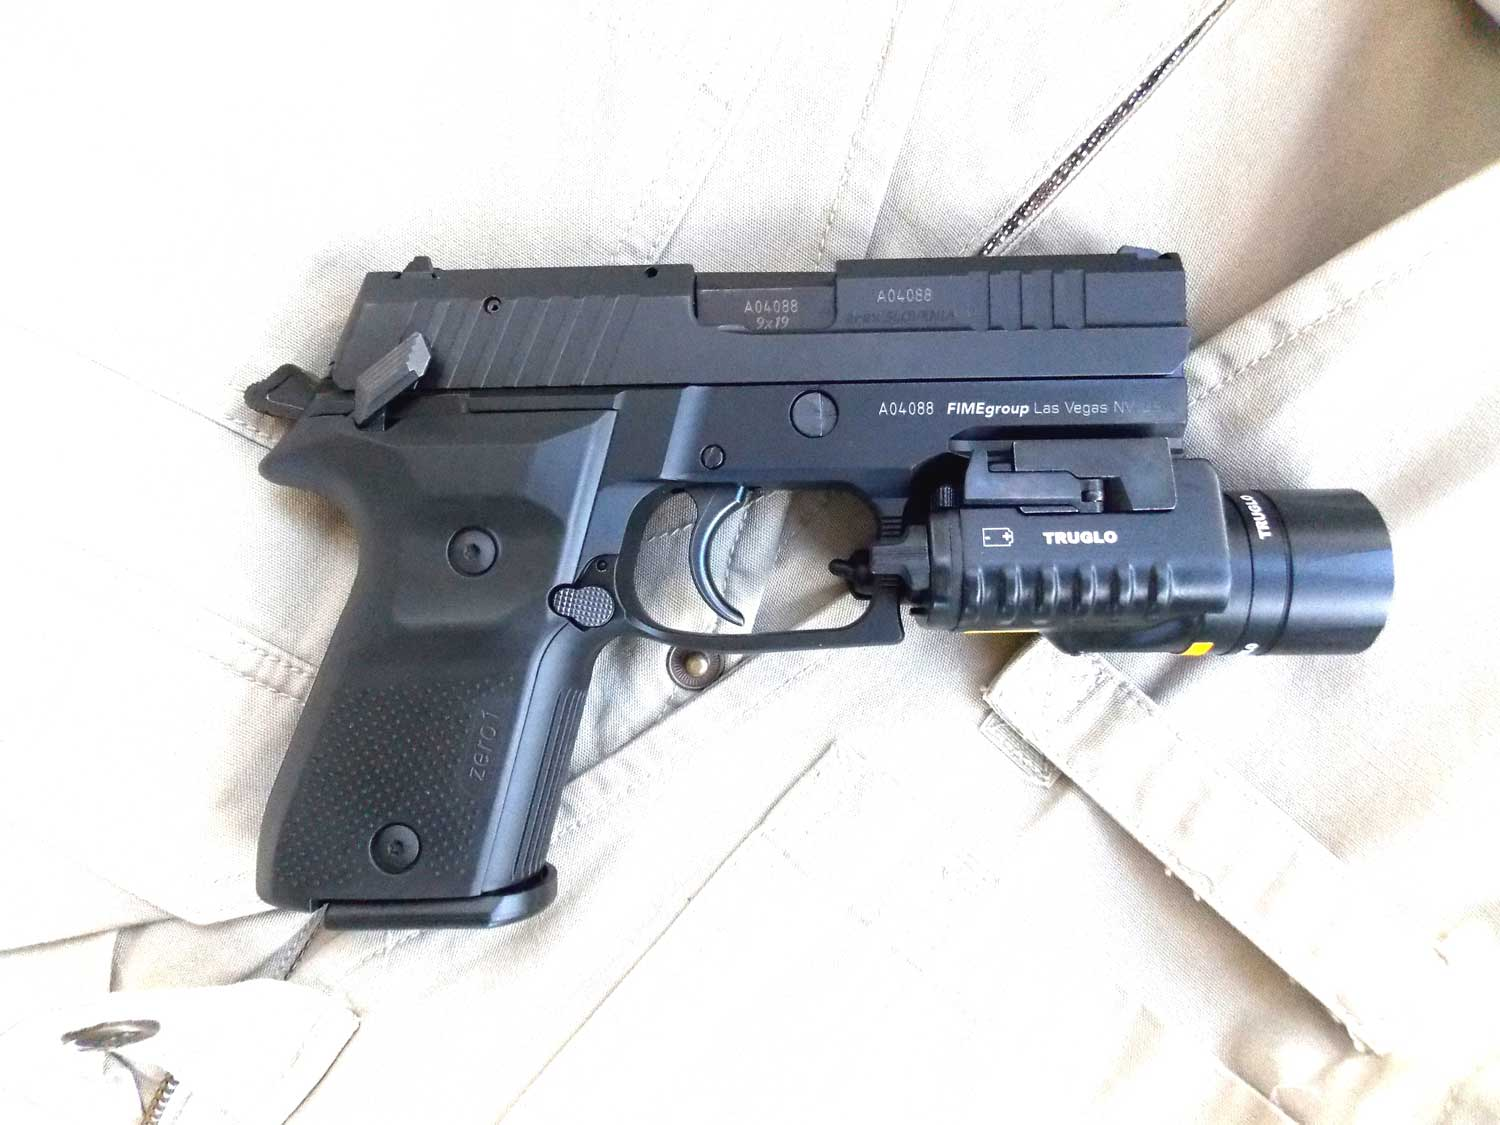 AREX Rex pistol equipped with a TruGlo TruLite combat light right